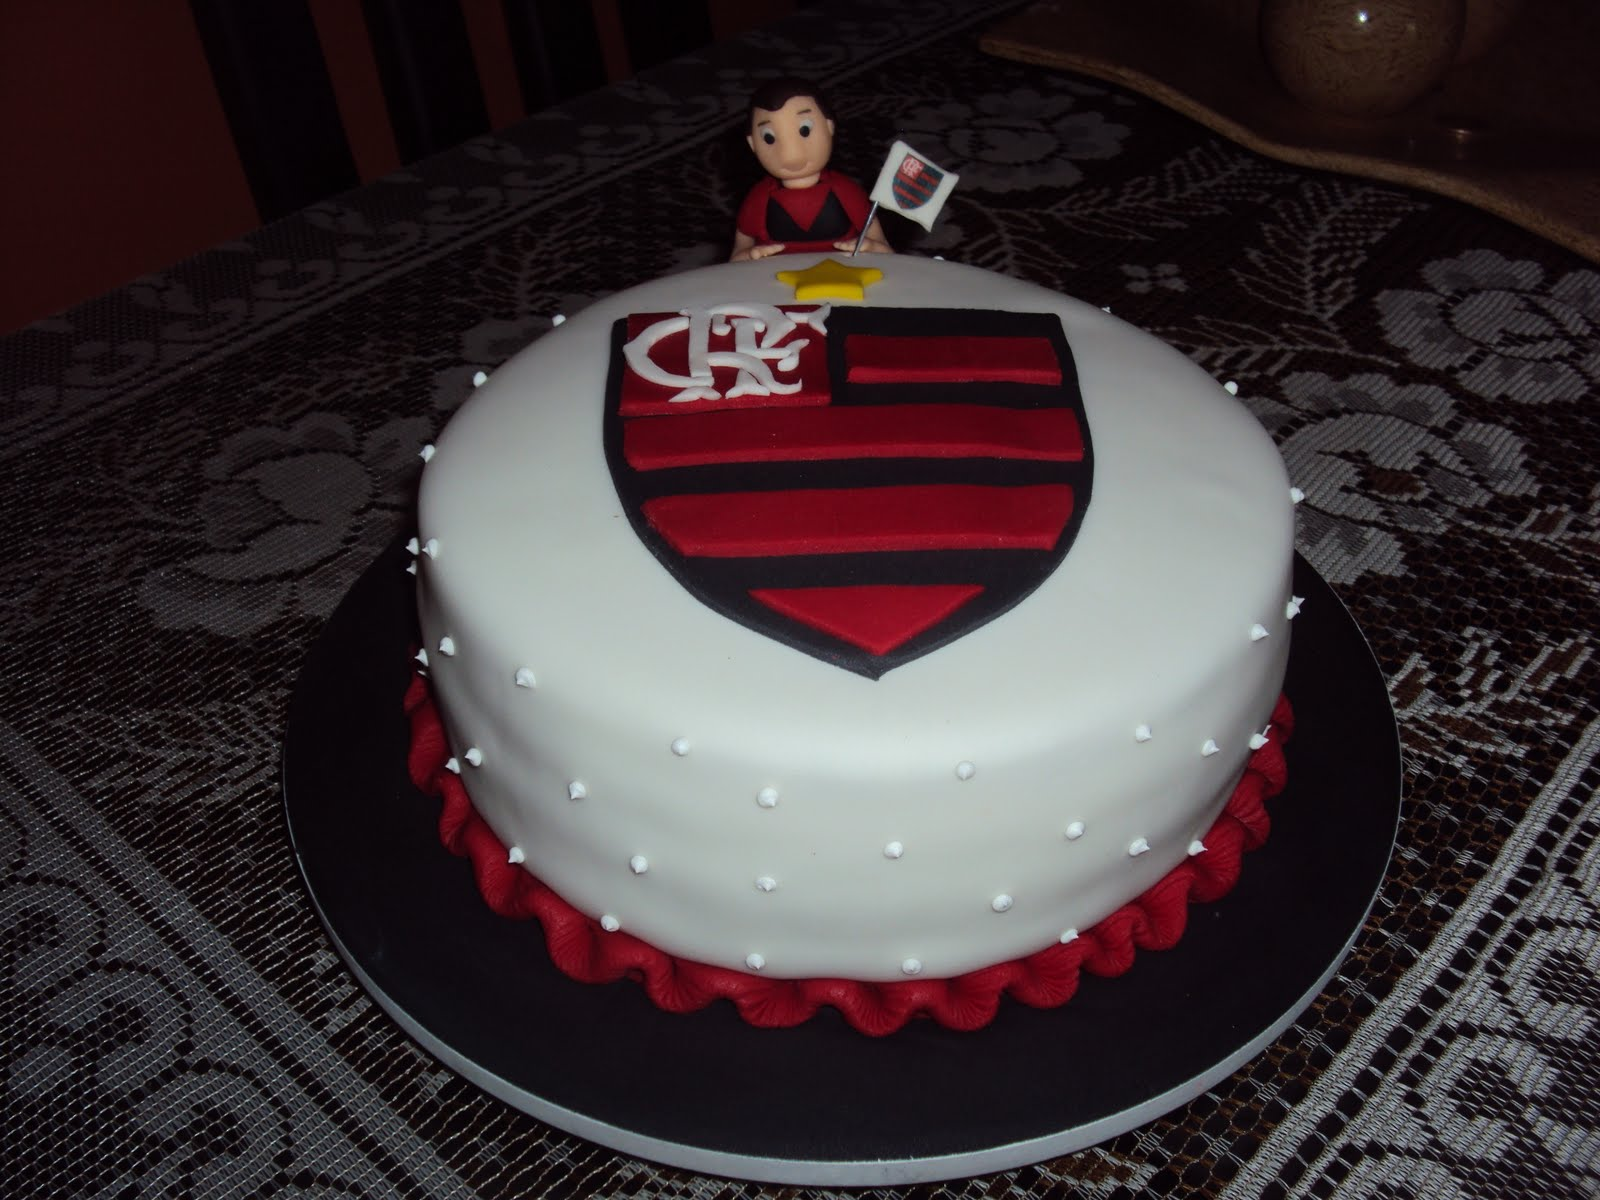 Cakes Bolos Artsticos Bolo Do Flamengo Mengo Rs